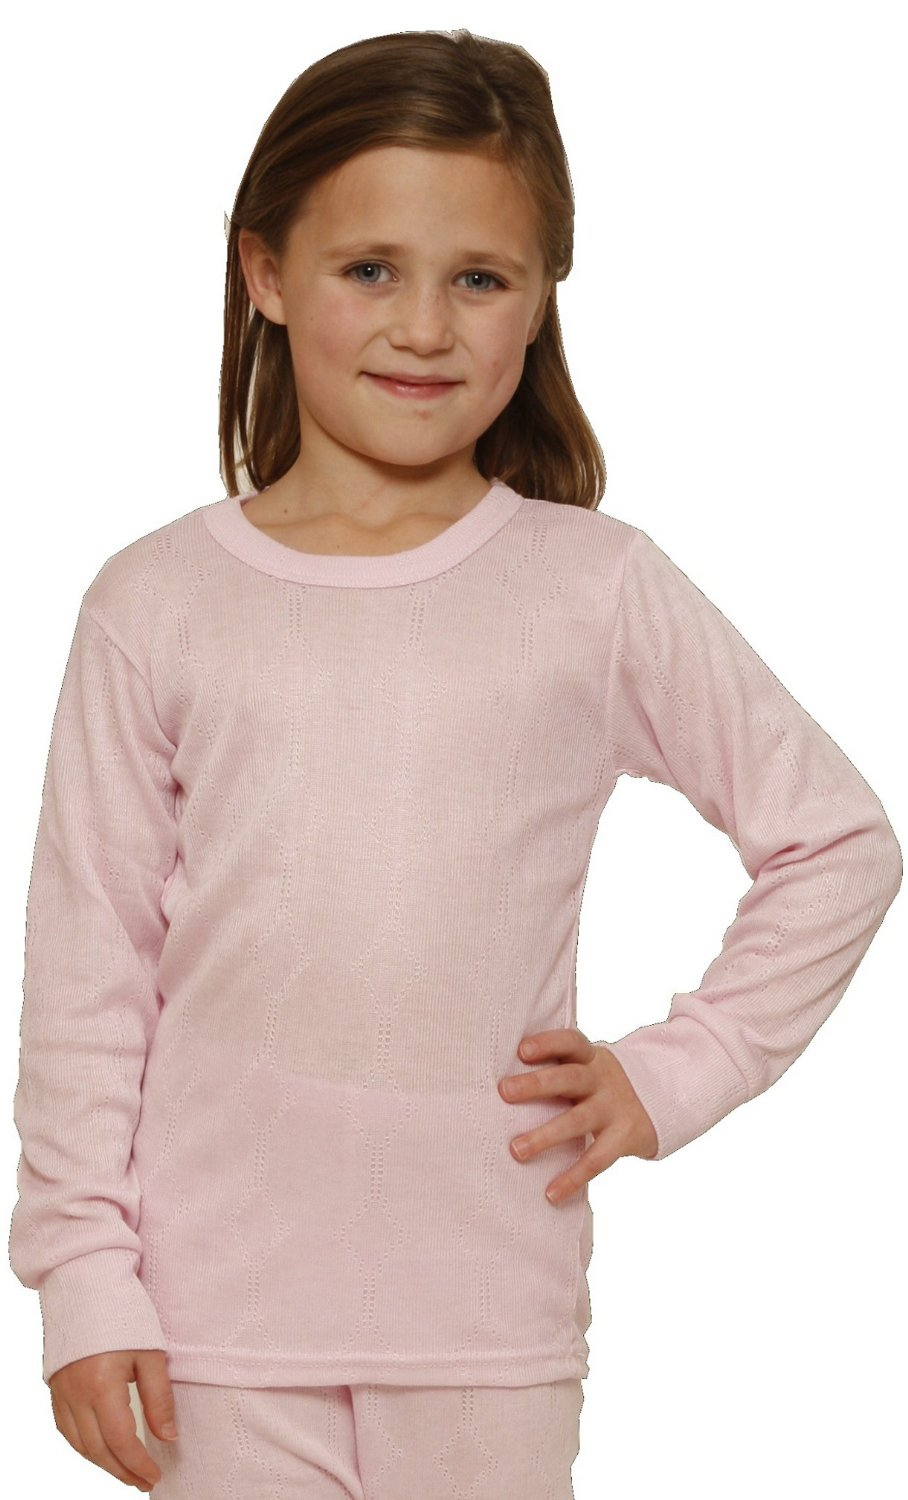 Octave® Girls Thermal Underwear Fancy Knit Long-Sleeve Top